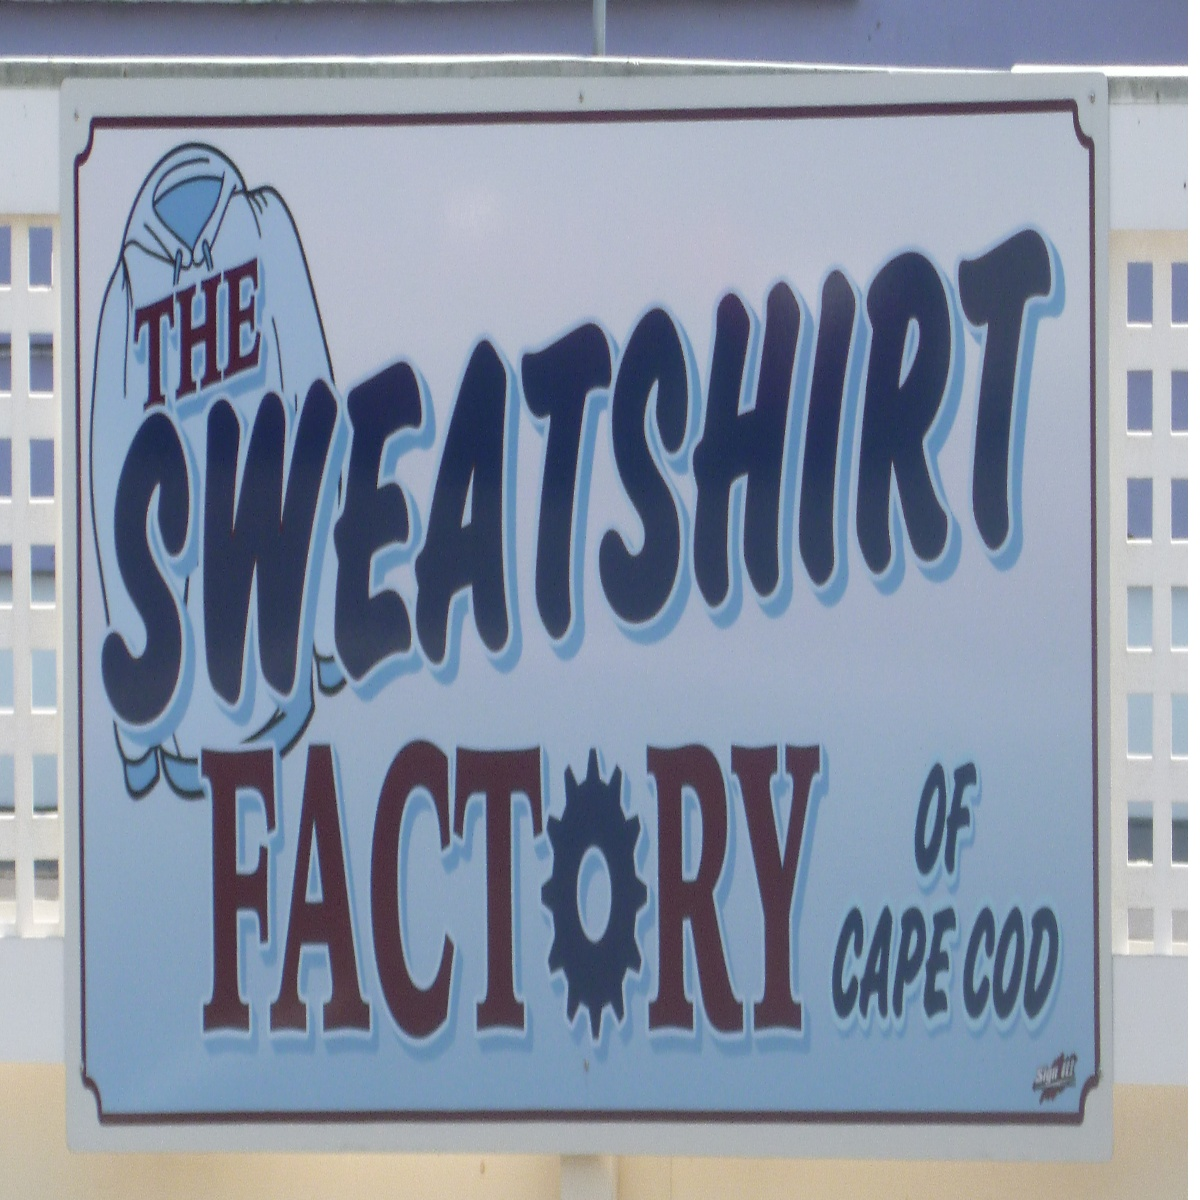 The Sweatshirt Factory Inc.